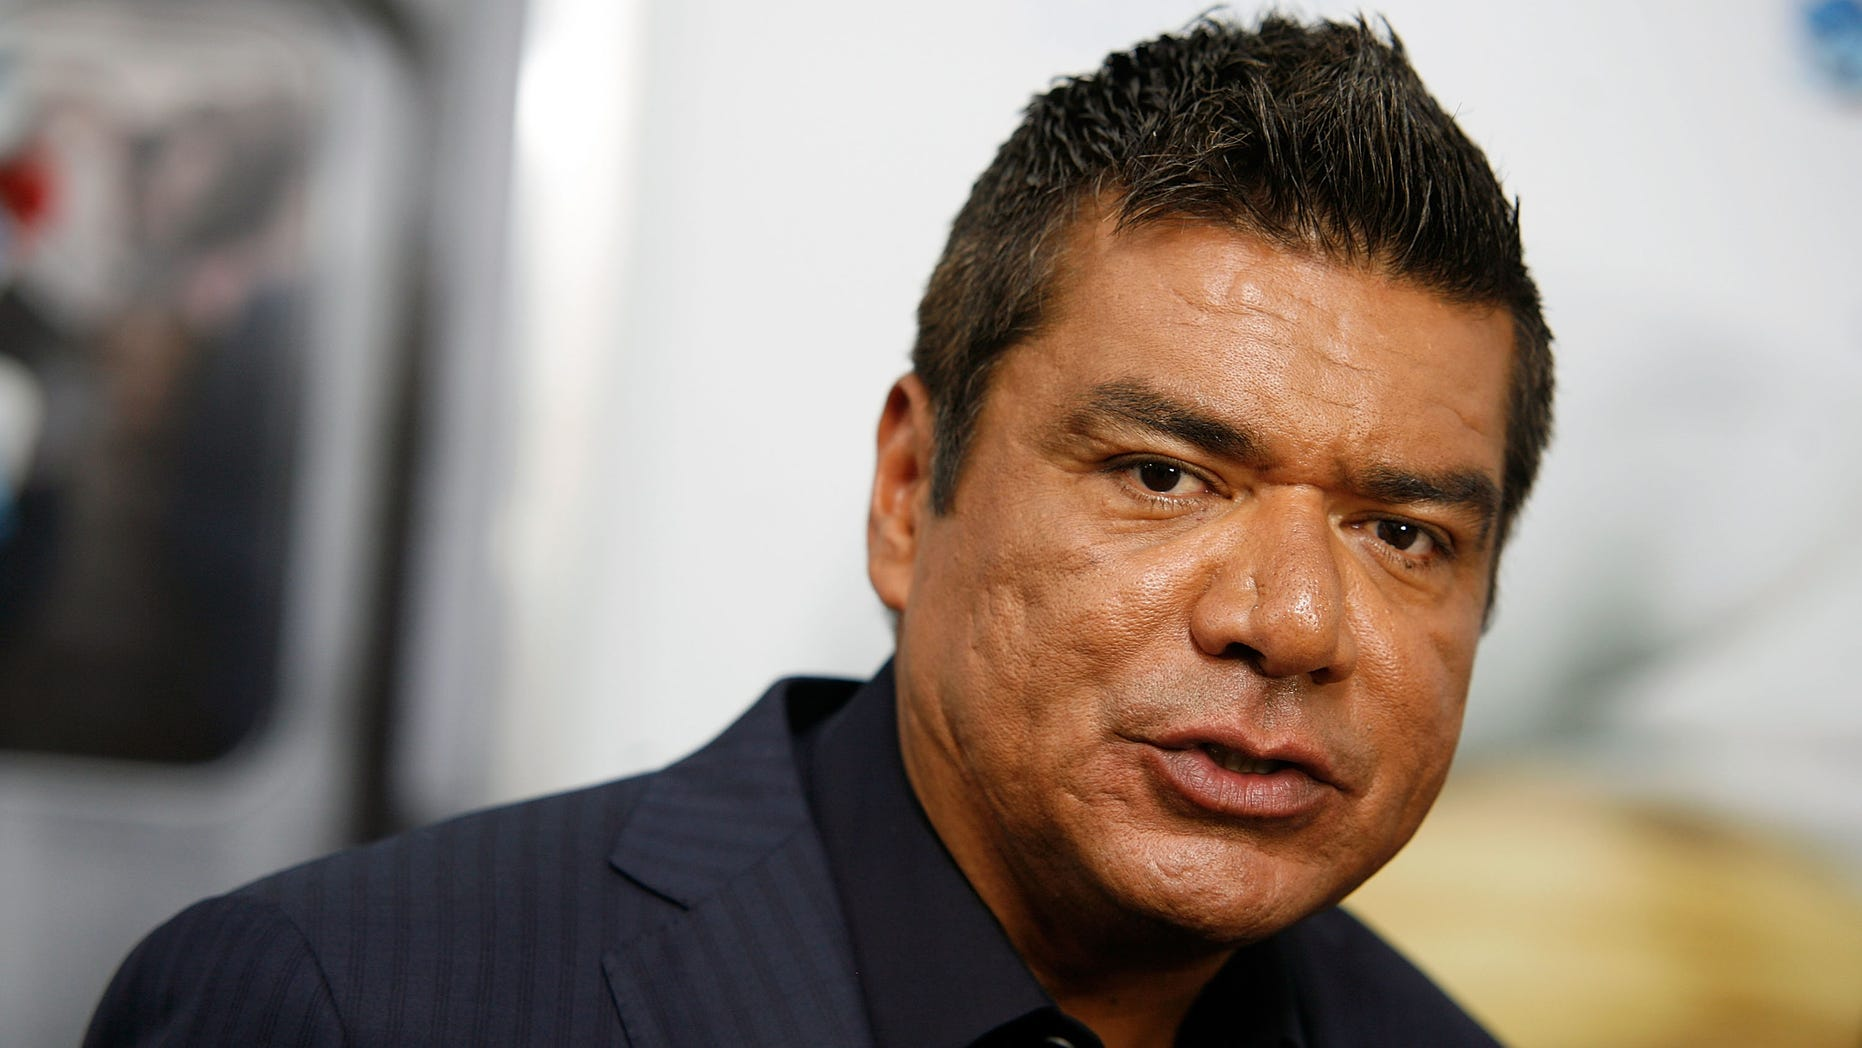 George Lopez Hooters Victim Says Trump Reference Was Only a Joke